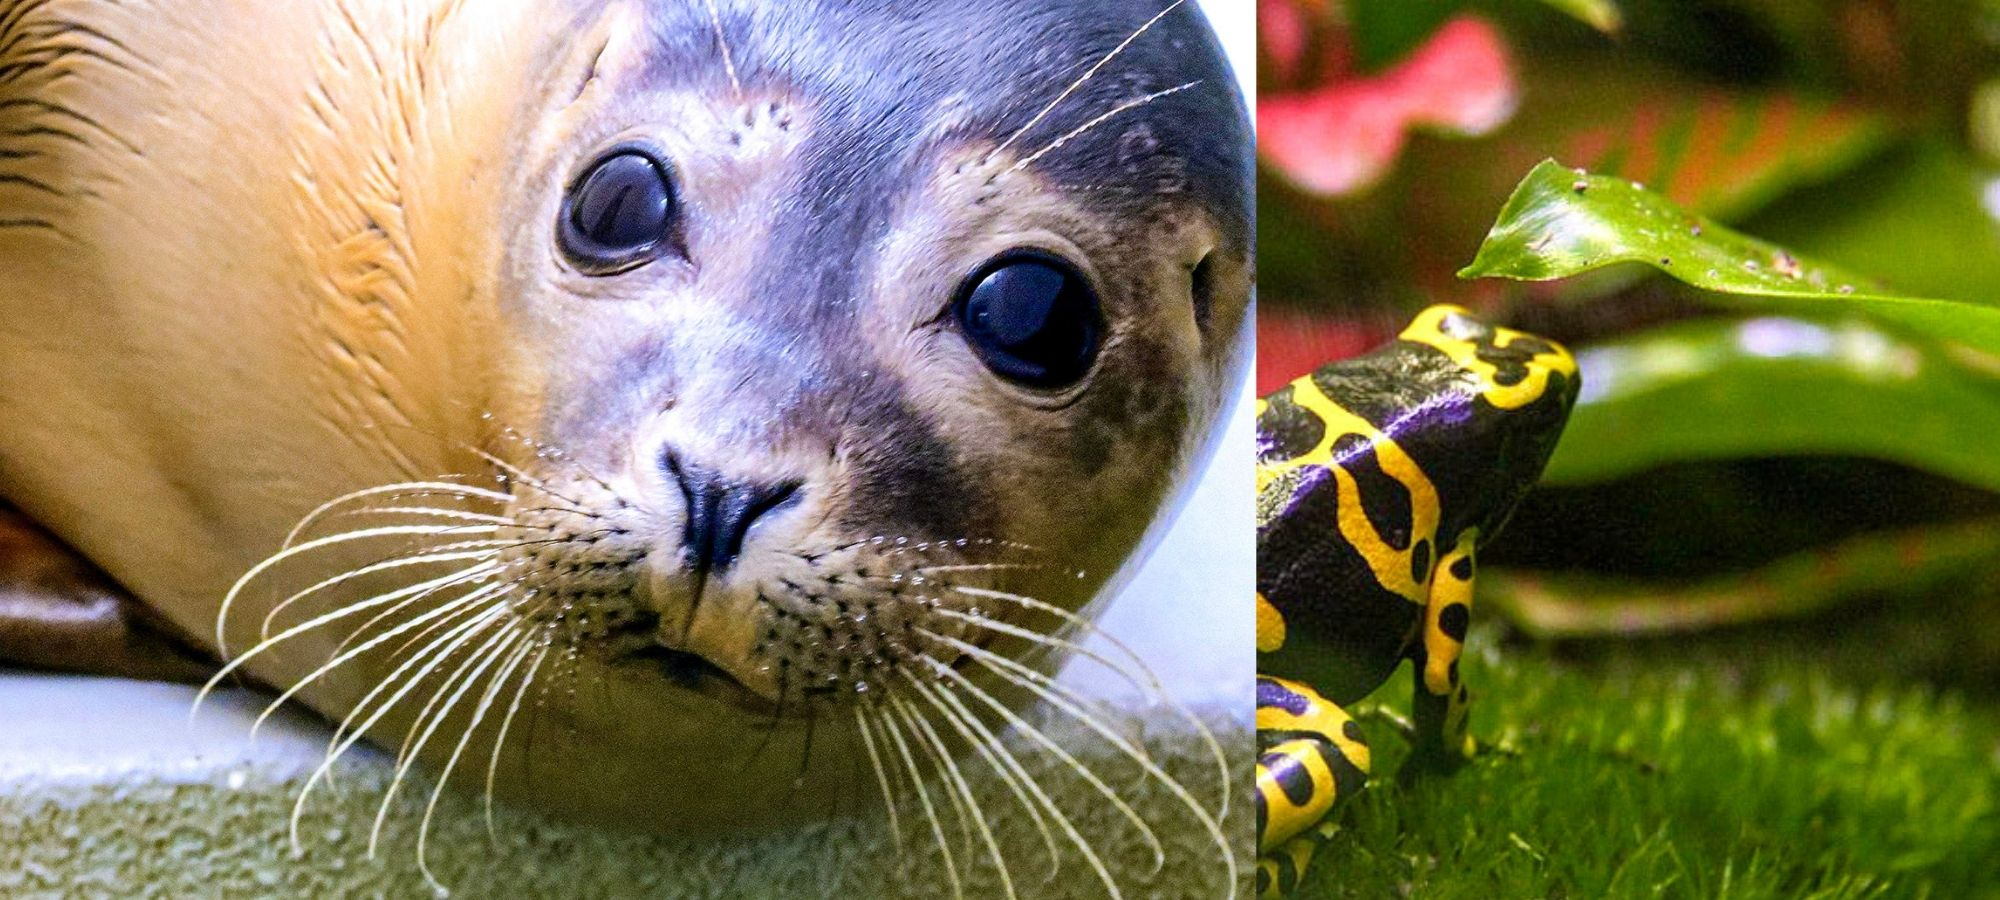 Left: Seal looking directly at camera. Right: a black and yellow frog.